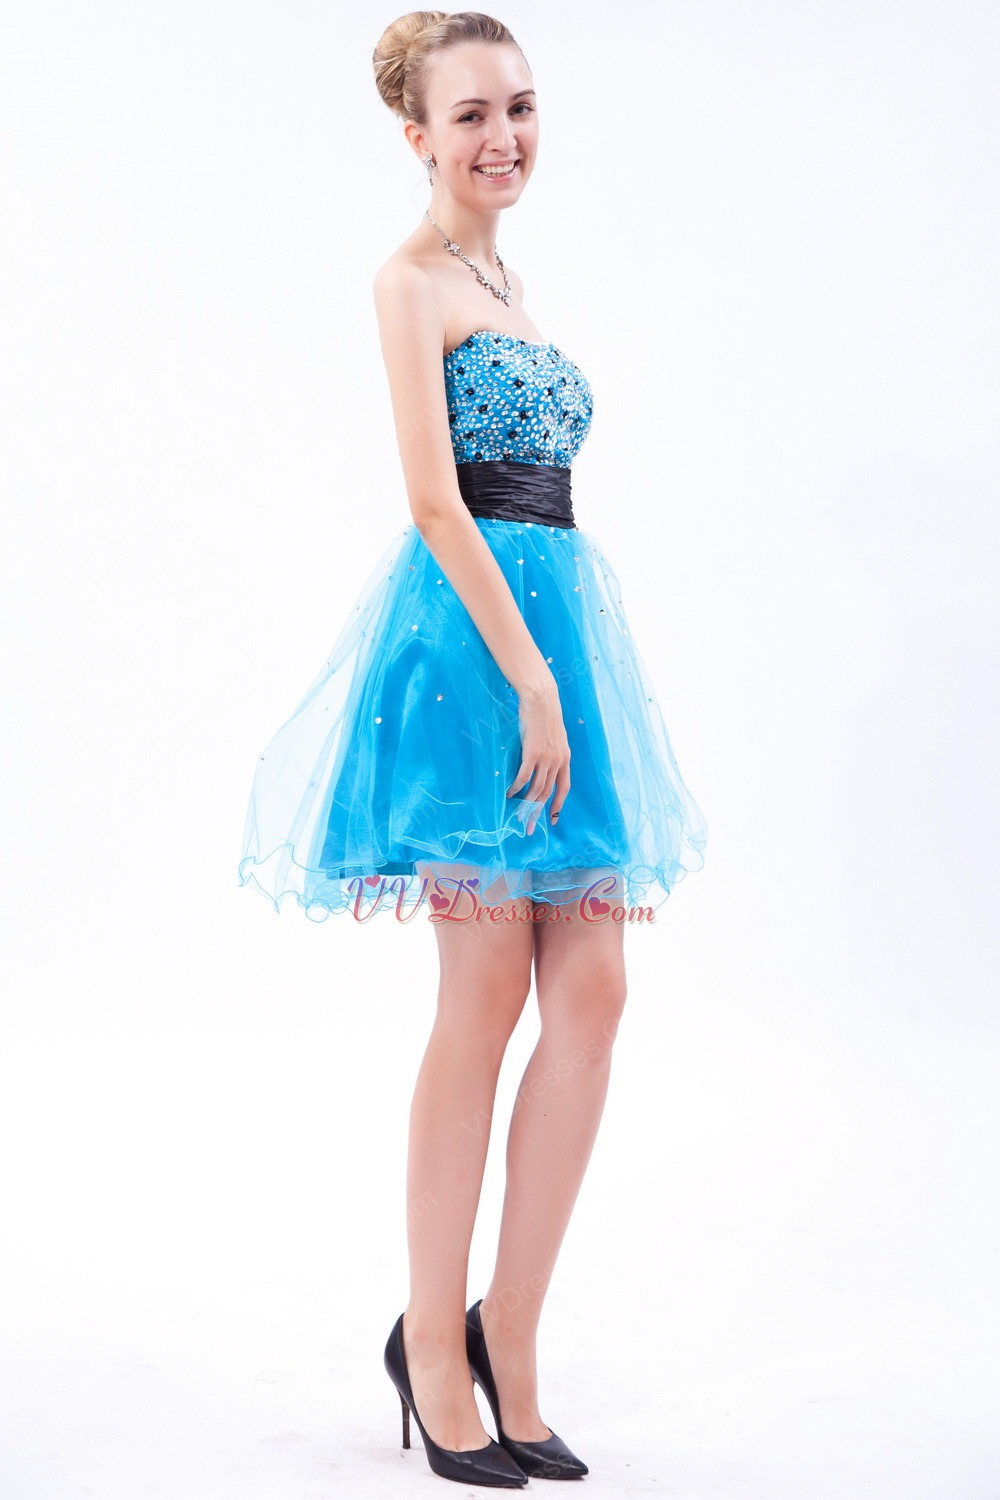 Sexy Beaded Sequin Mini Azure Cocktail Dress Girls Wear